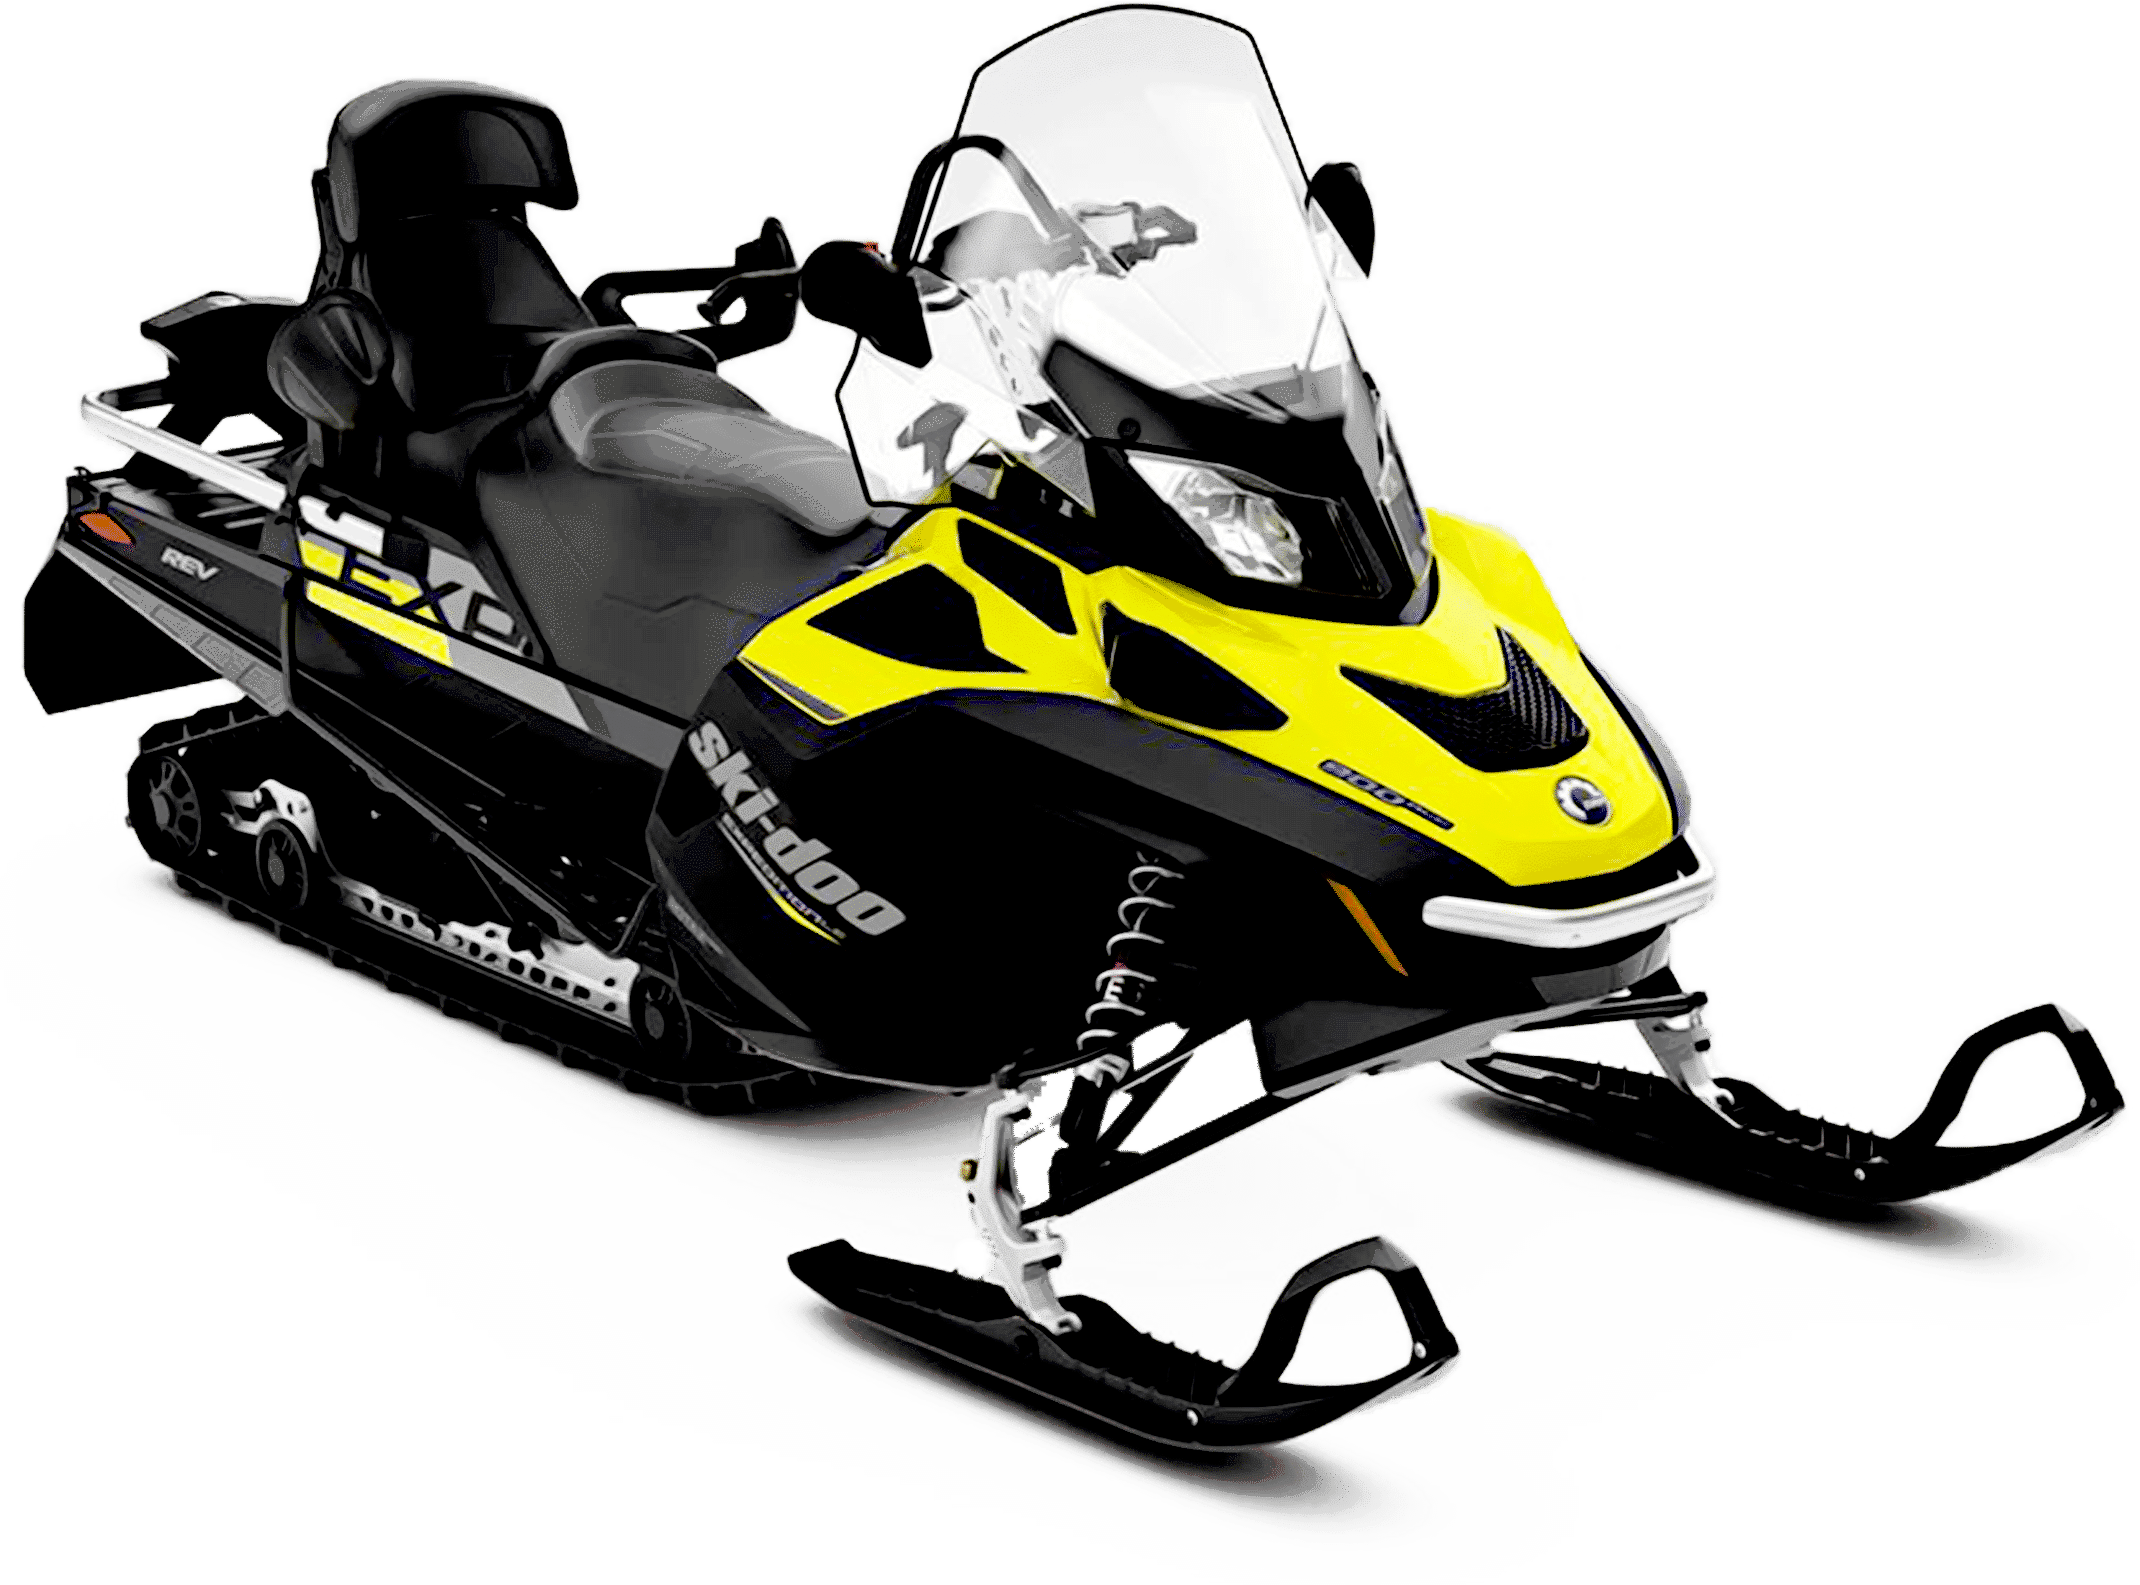 Ski-Doo Expedition 5